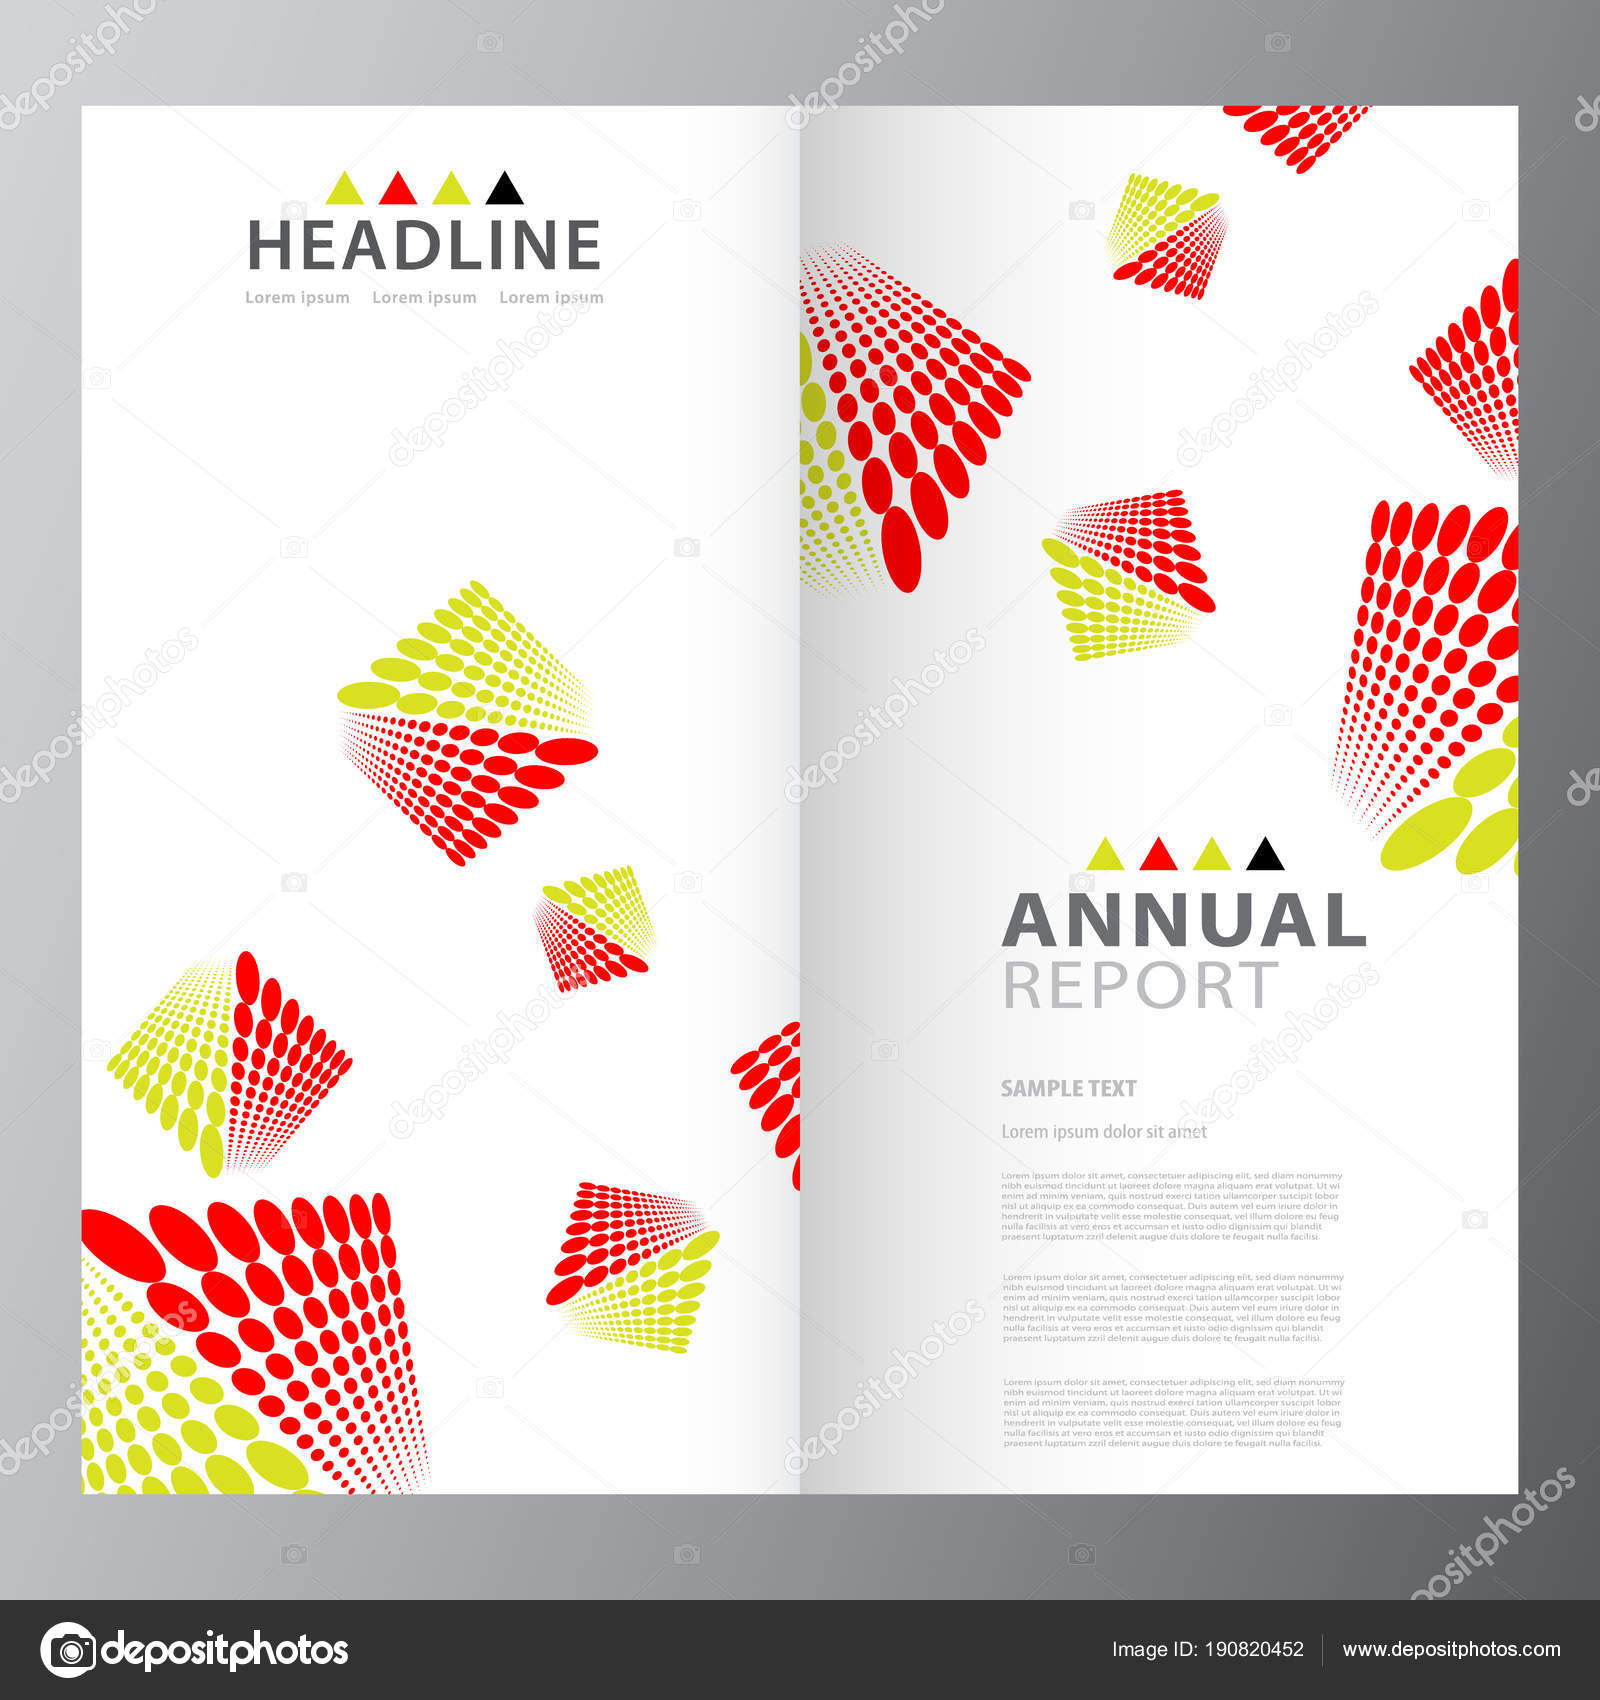 annual business report template stock vector stocklady36 190820452